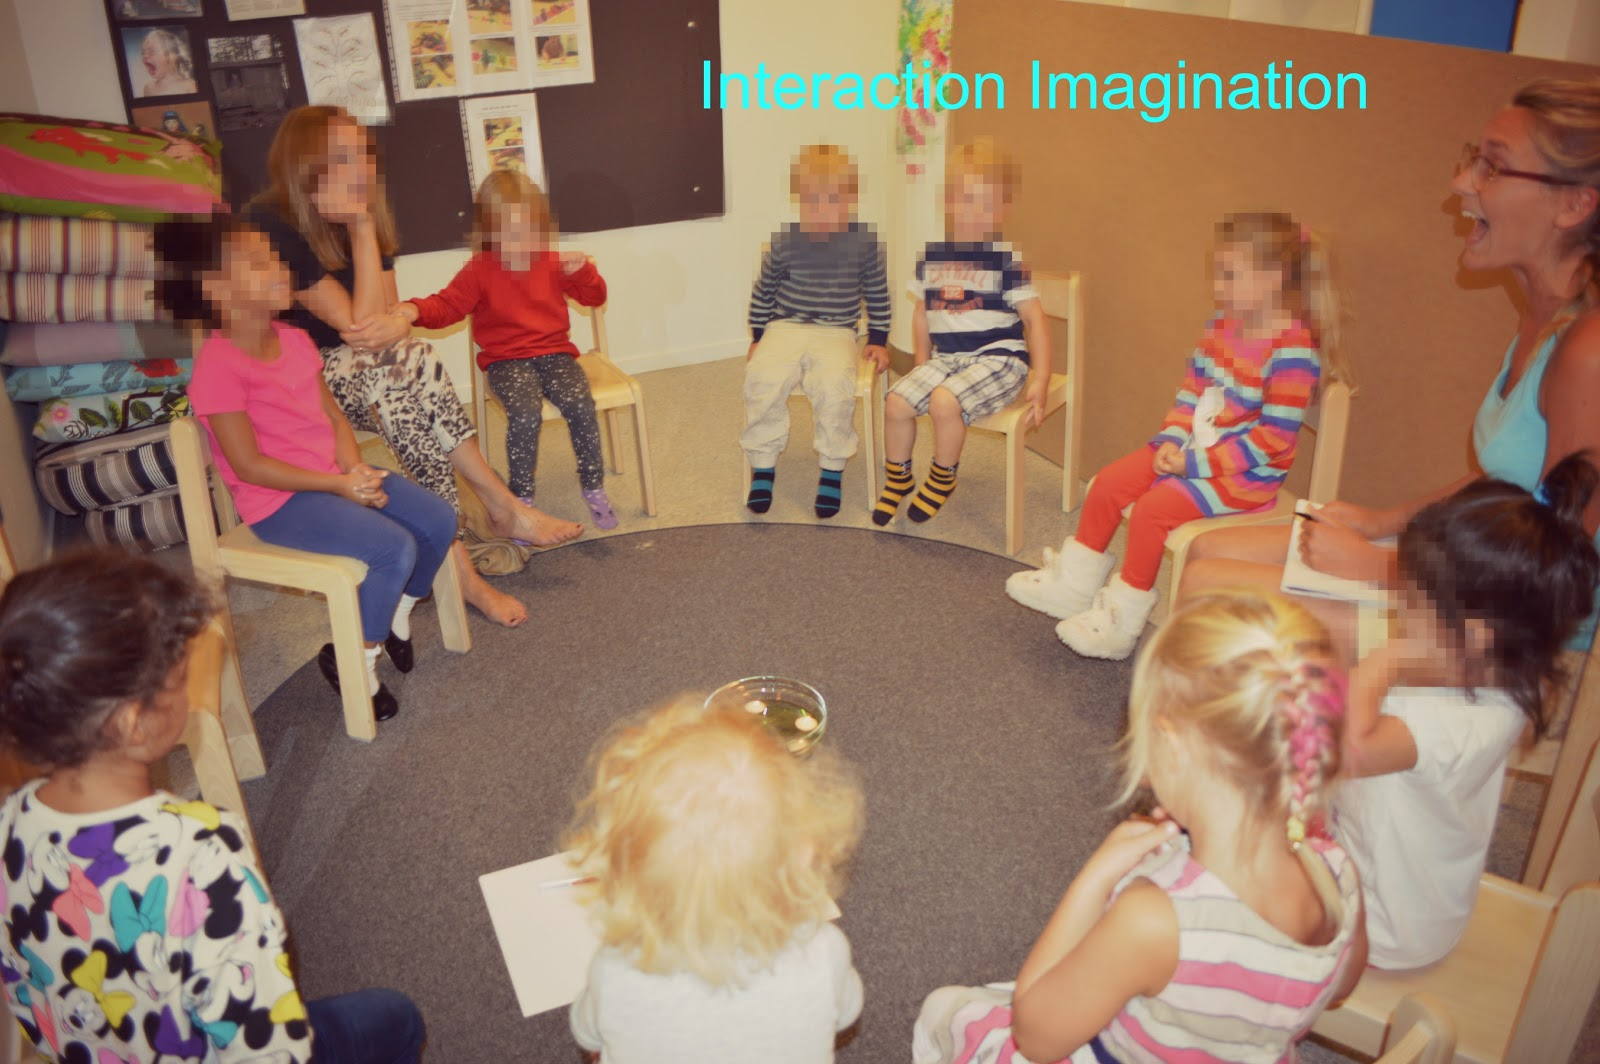 philosophical chairs topics serta leather office chair interaction imagination